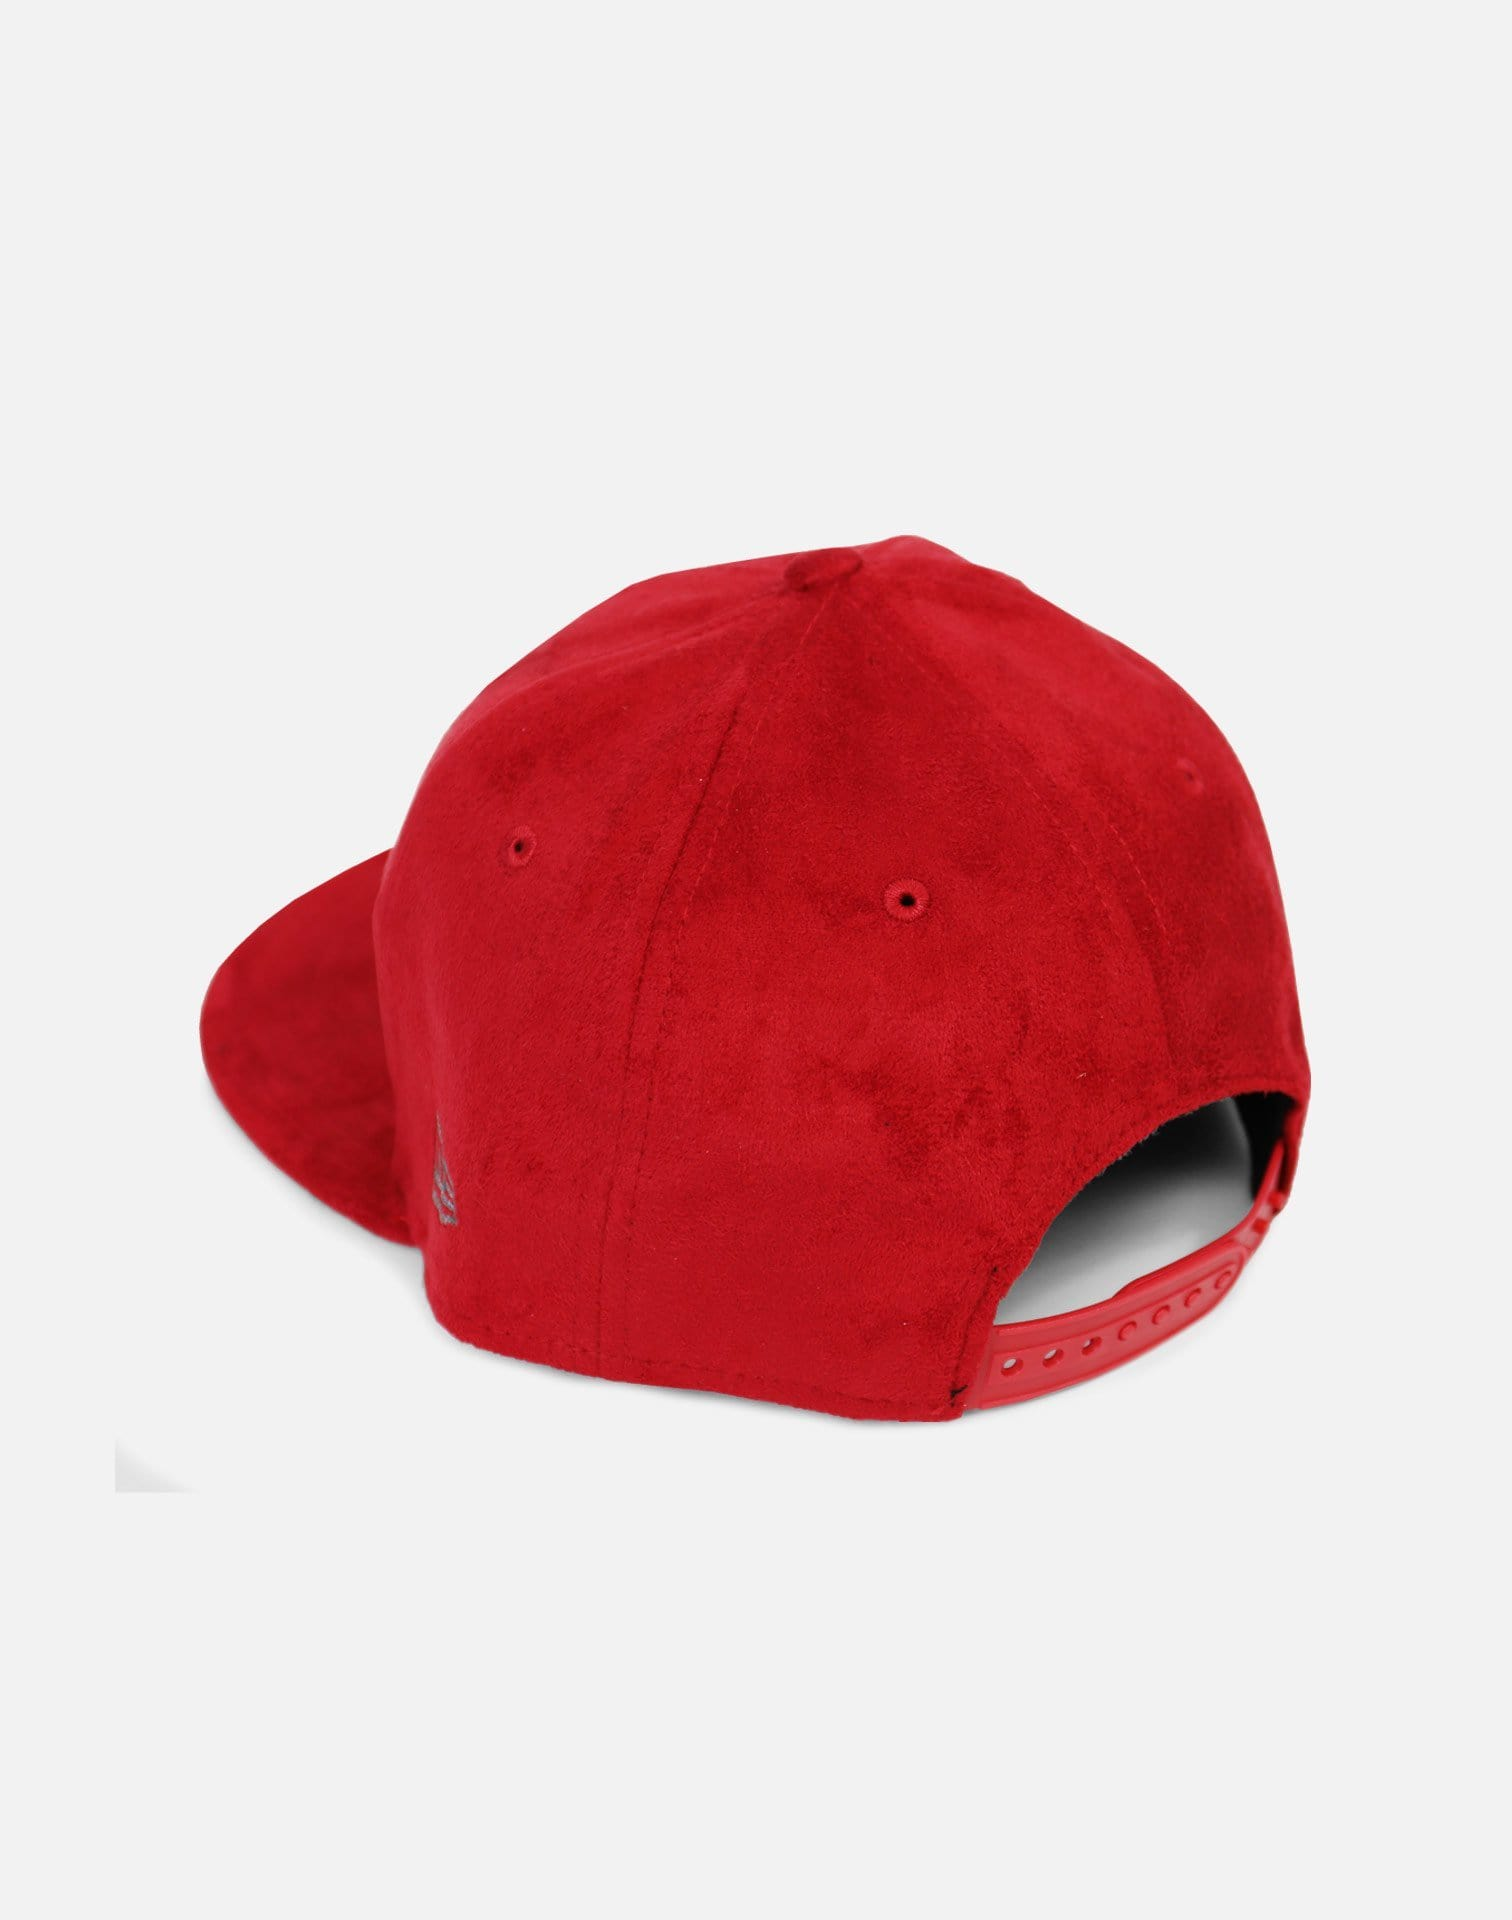 New Era Cleveland Cavaliers Suede Snapback Hat (Red)